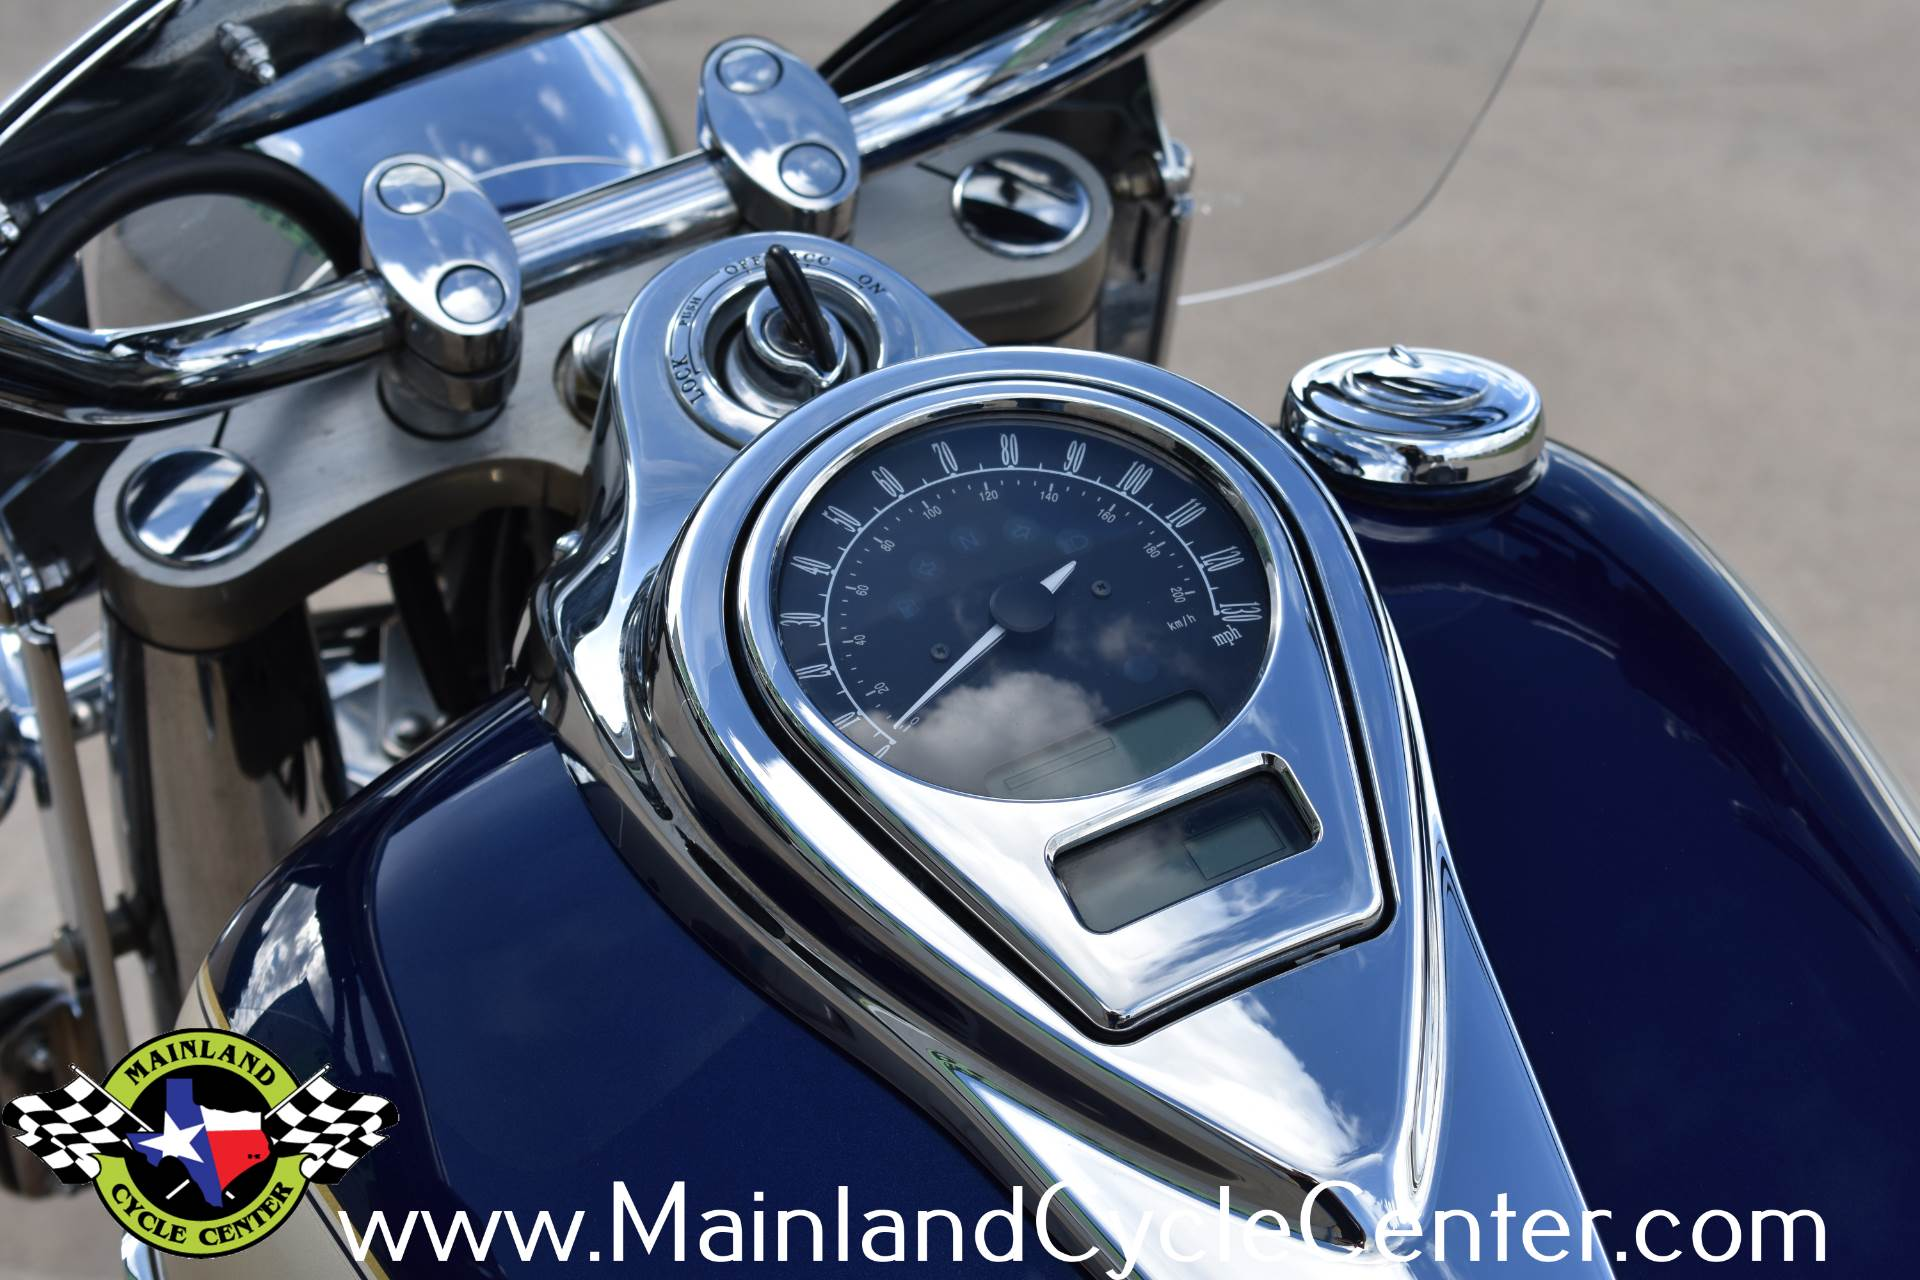 2009 Kawasaki Vulcan 1700 Classic LT in La Marque, Texas - Photo 19